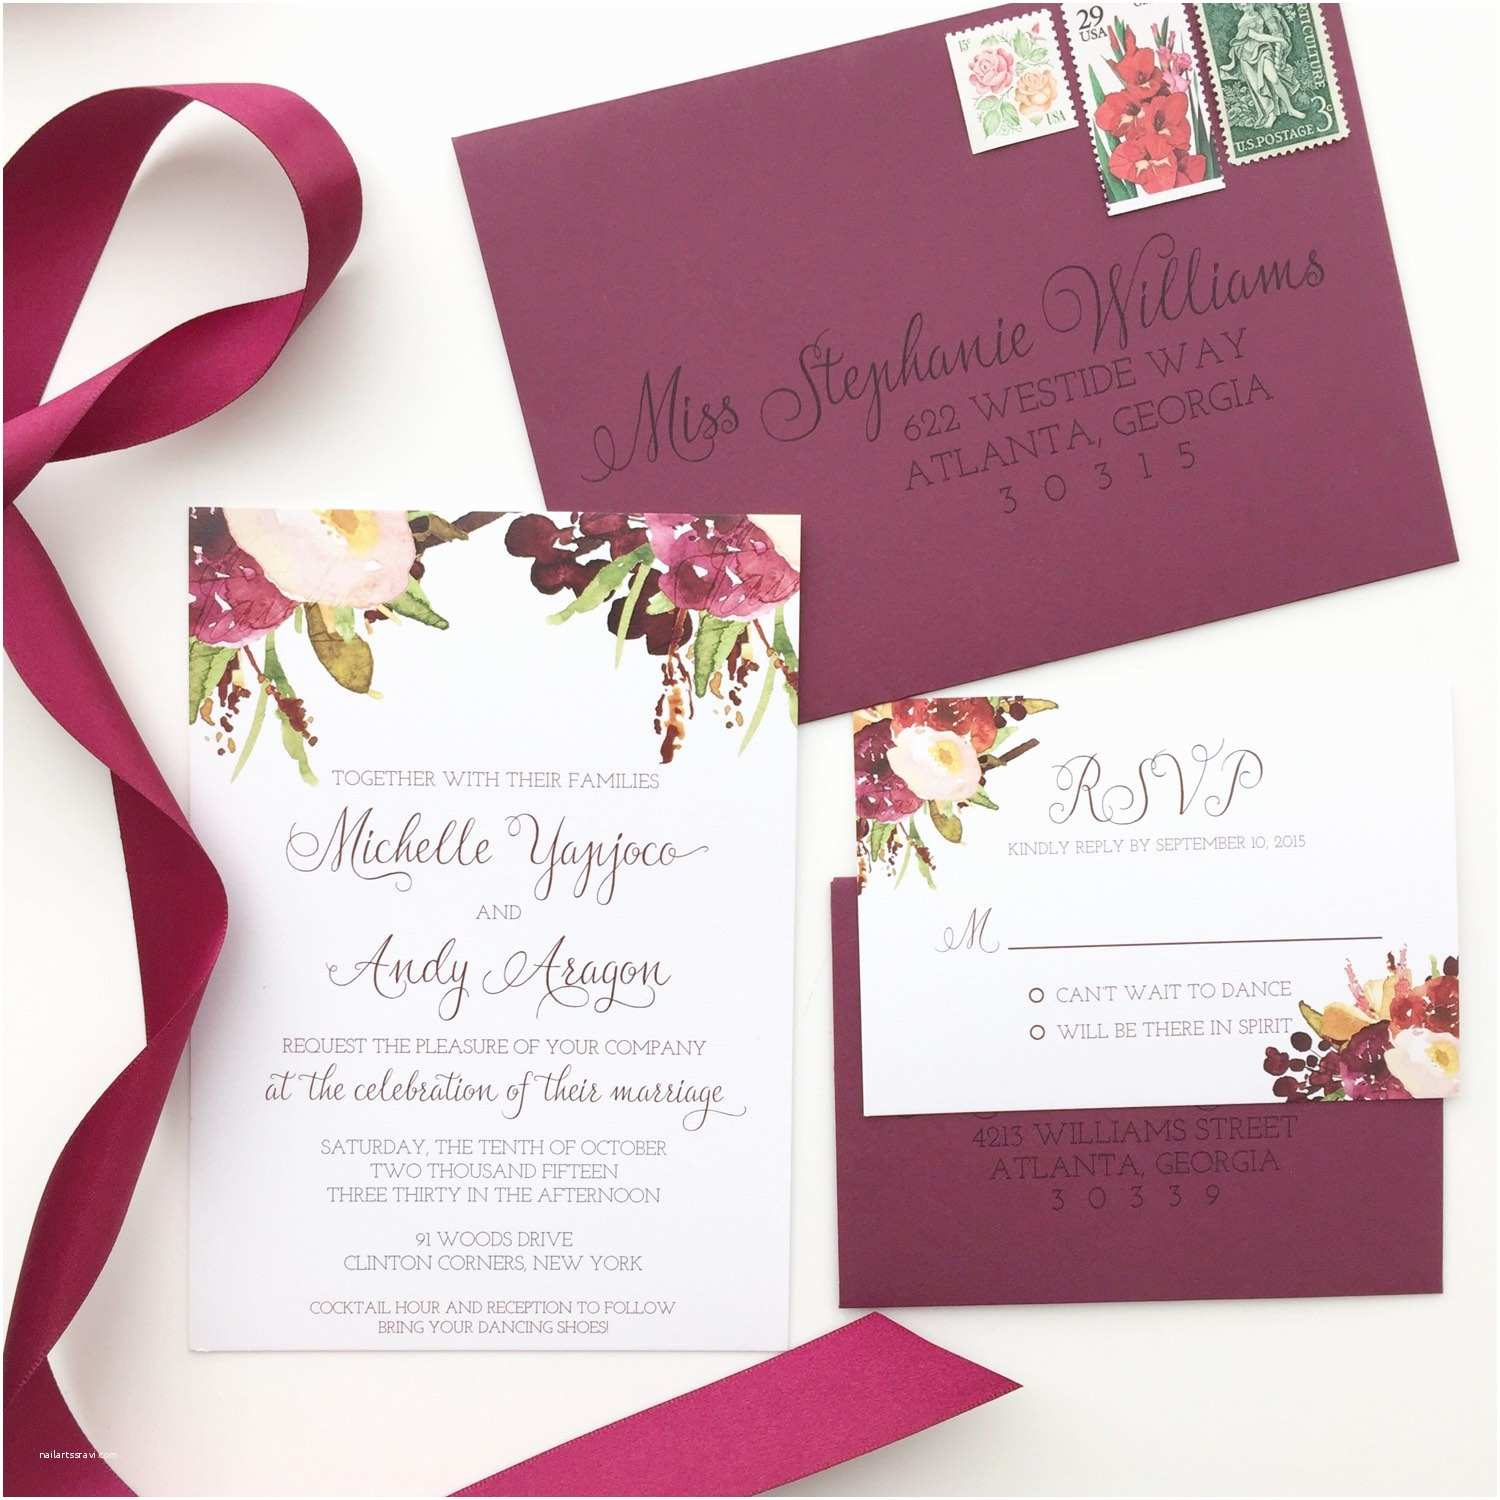 Burgundy themed Wedding Invitations Marsala Wedding Invitation Burgundy Floral by